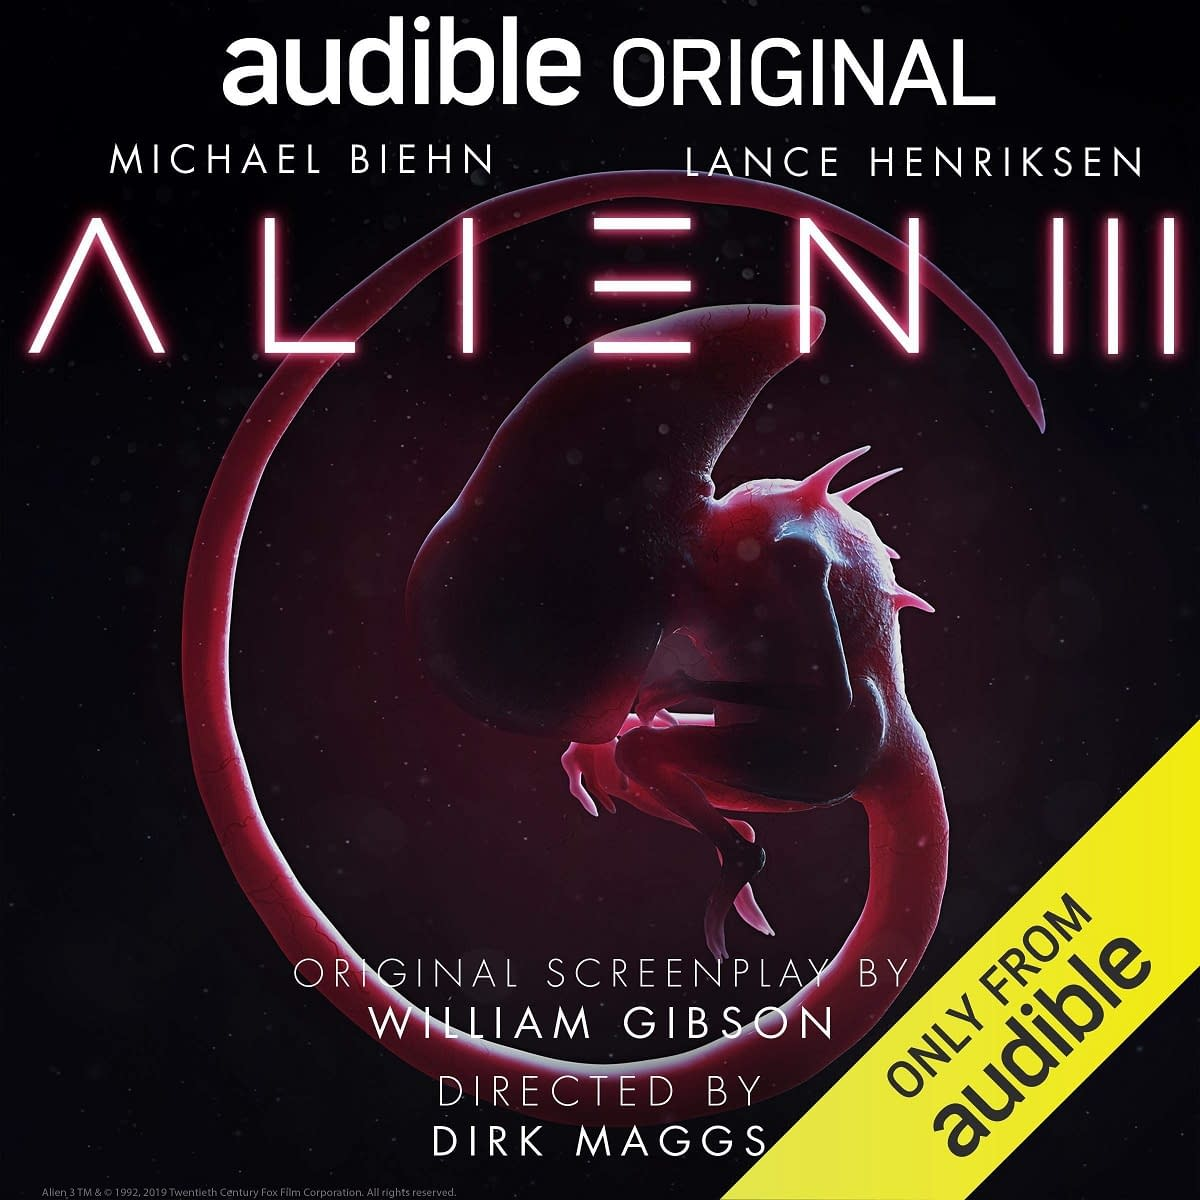 William Gibson's Alien III: The Path from Screenplay to Audio Play